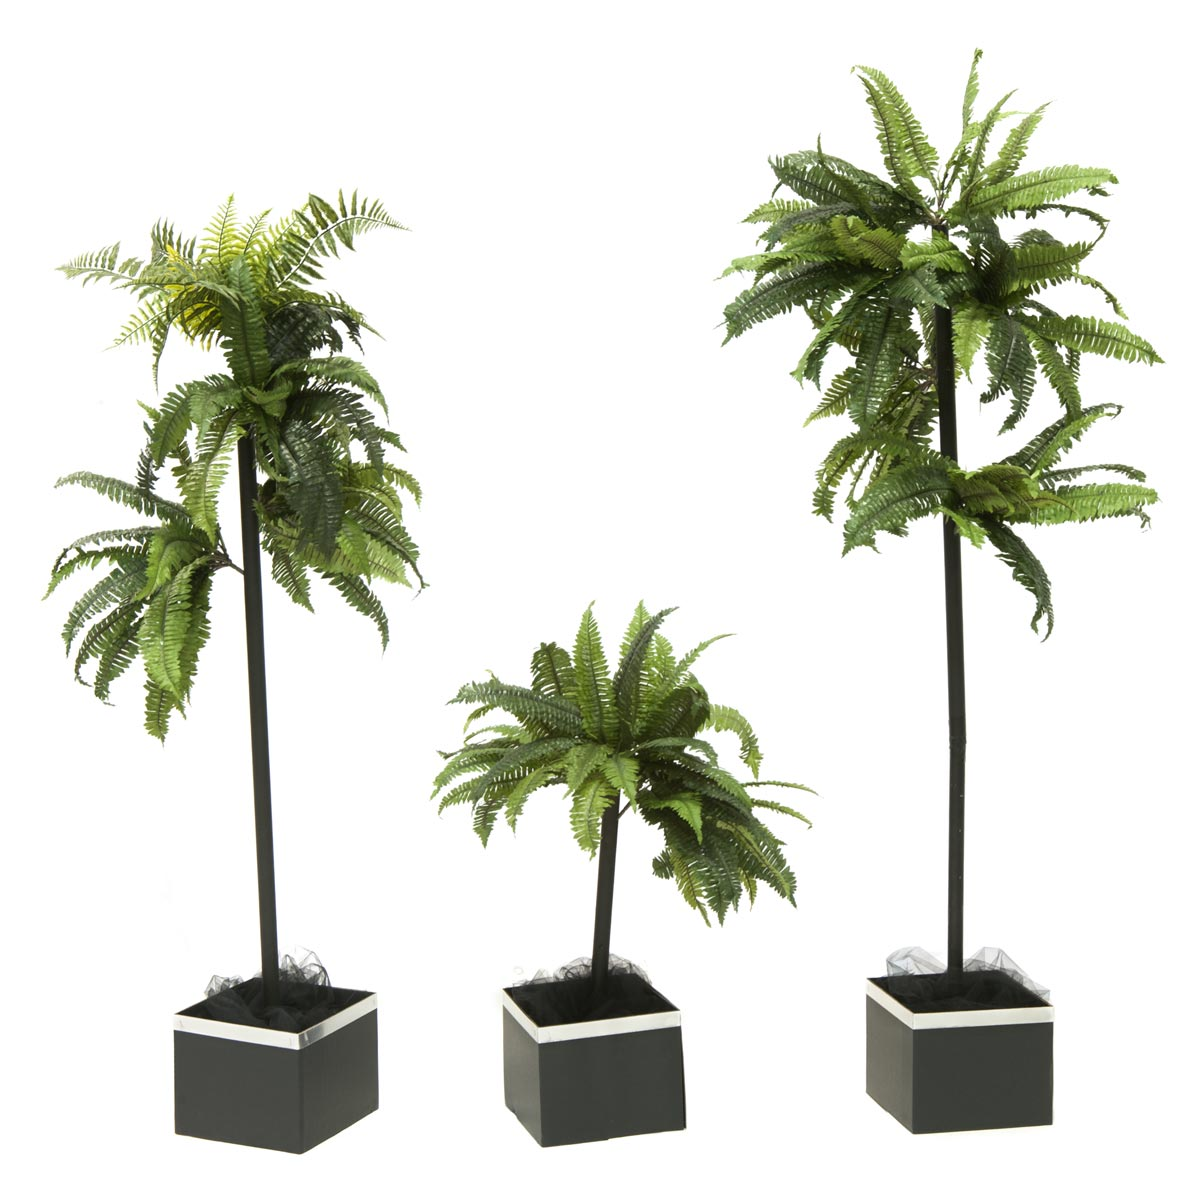 Have the Time of Your Life Trees Kit (set of 3)